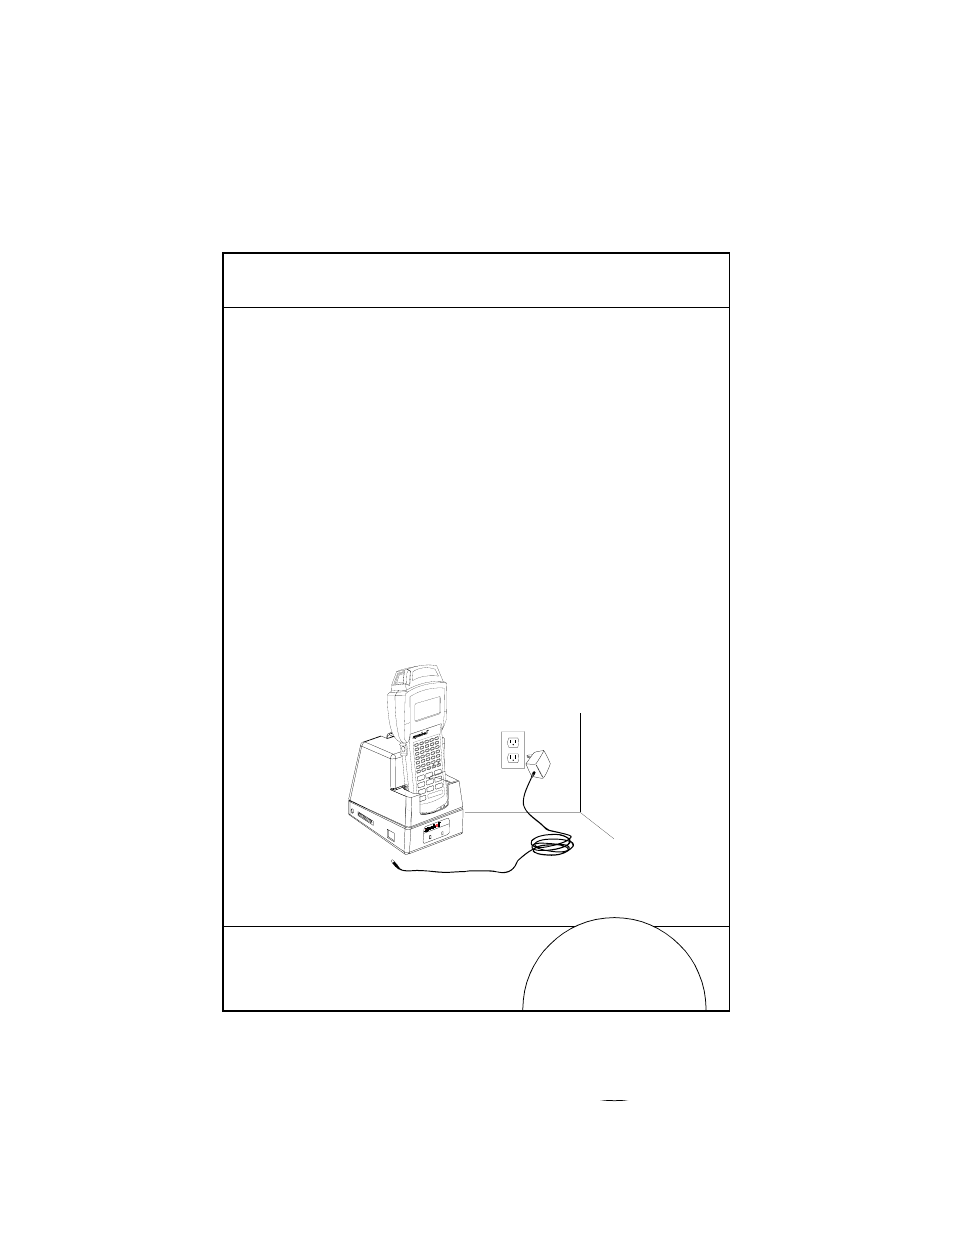 31xx Cradle Symbol Technologies 3100 Series User Manual Page 45